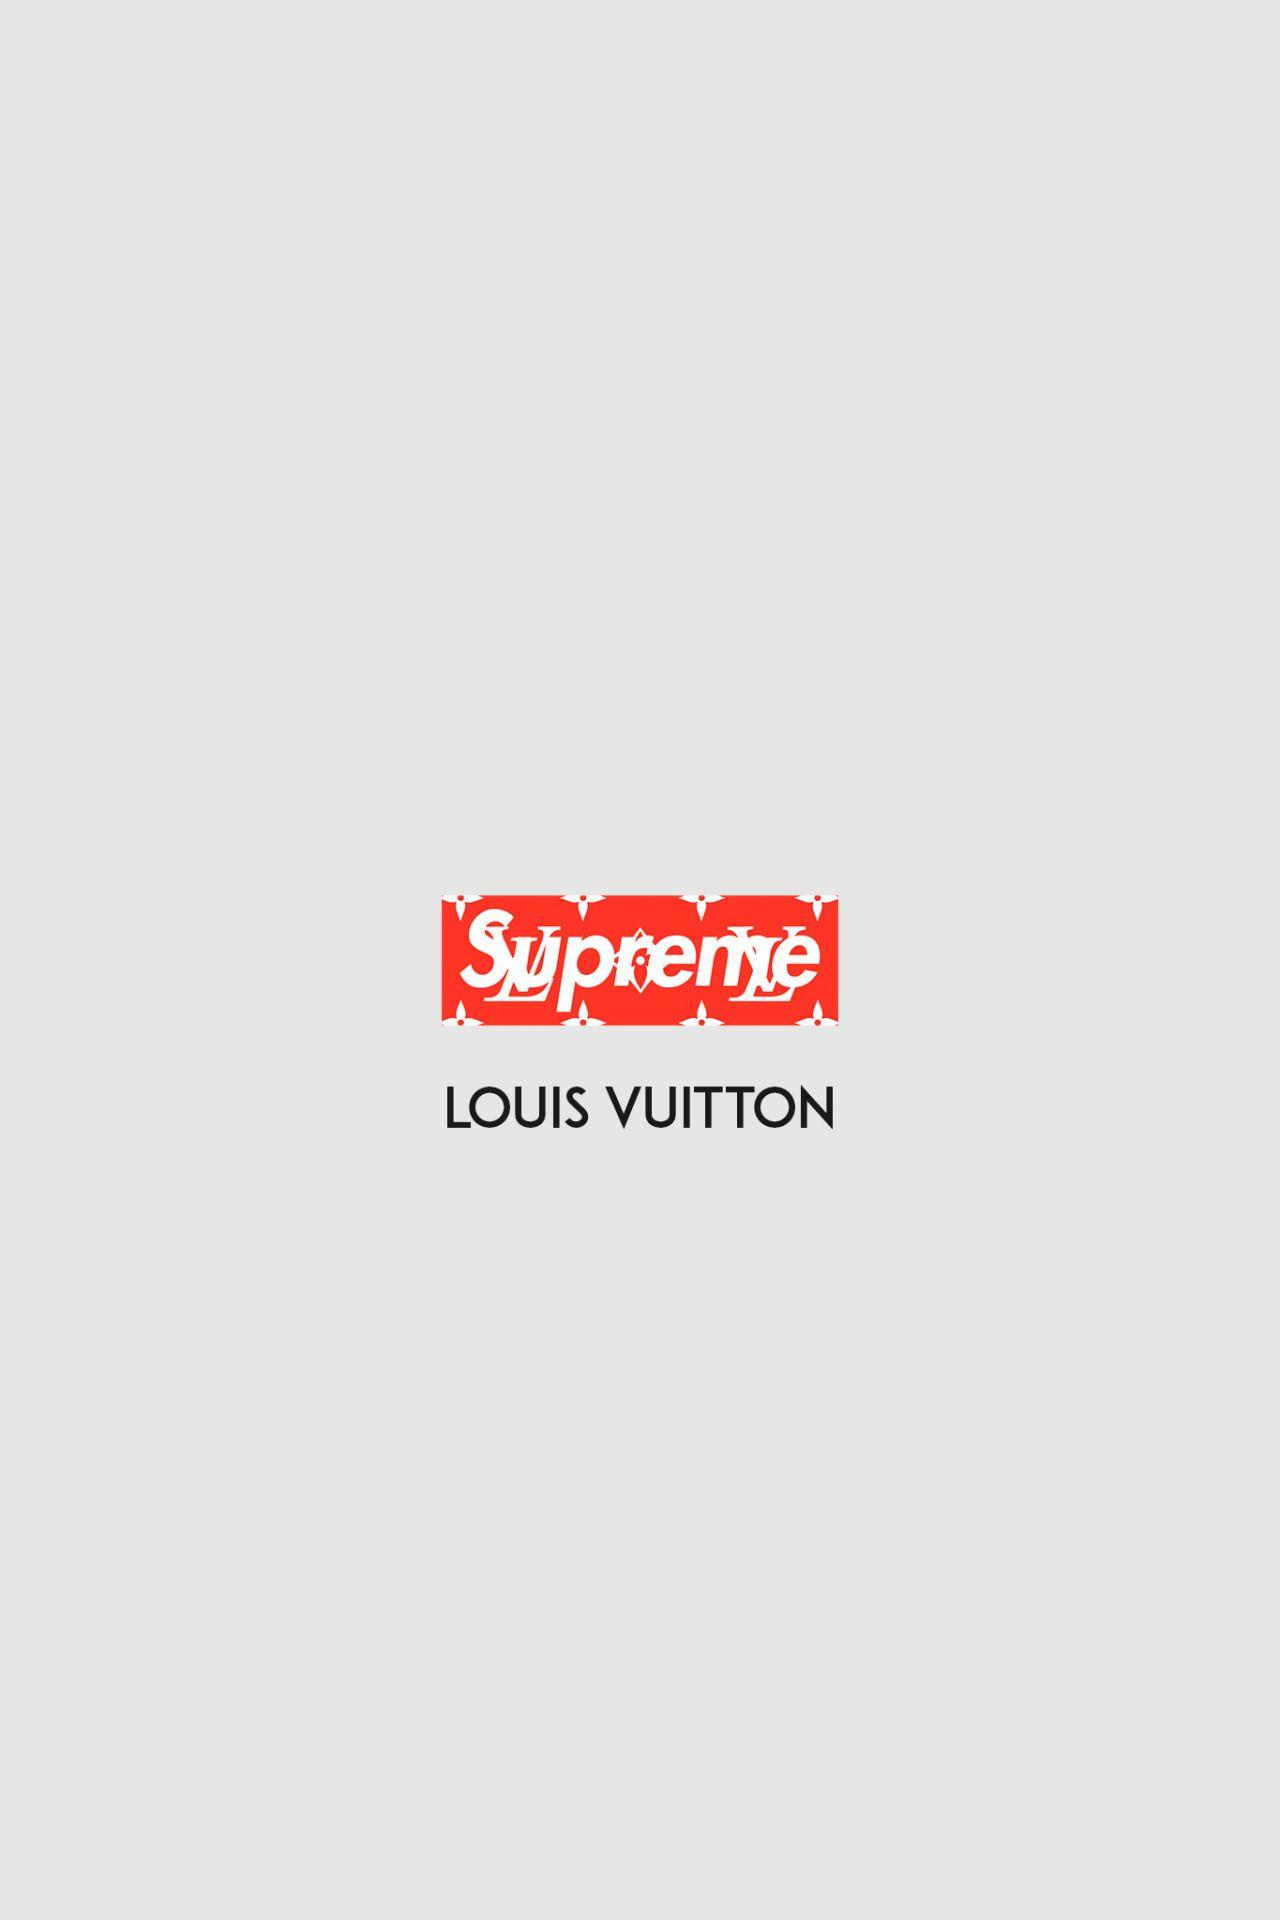 Supreme x Louis Vuitton wallpapers - Album on Imgur